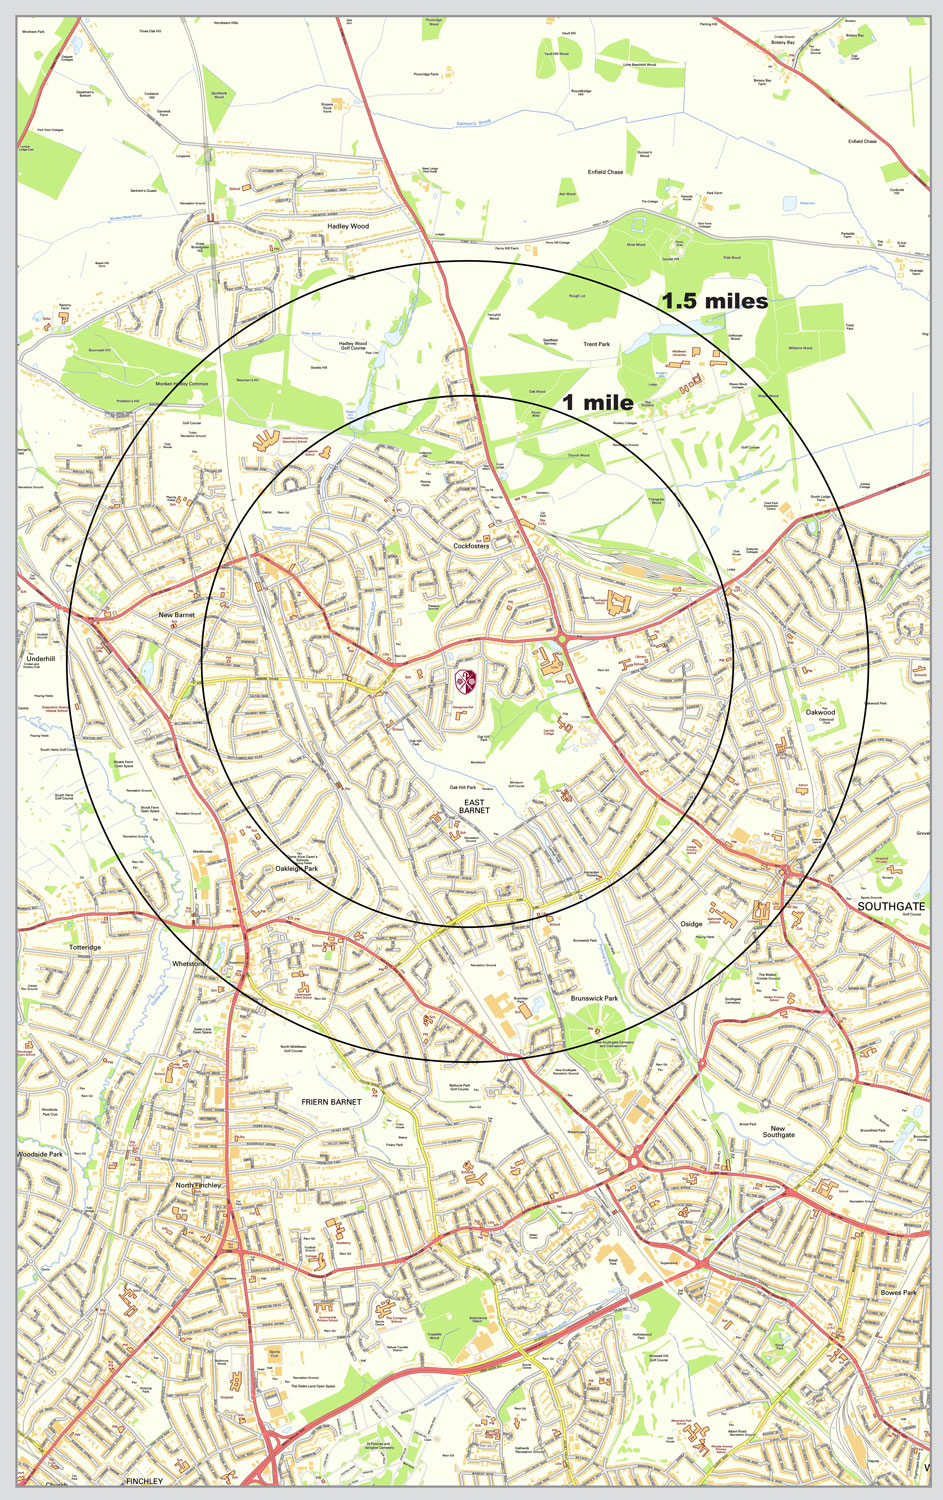 map to show a mile and a mile and a half from east barnet school